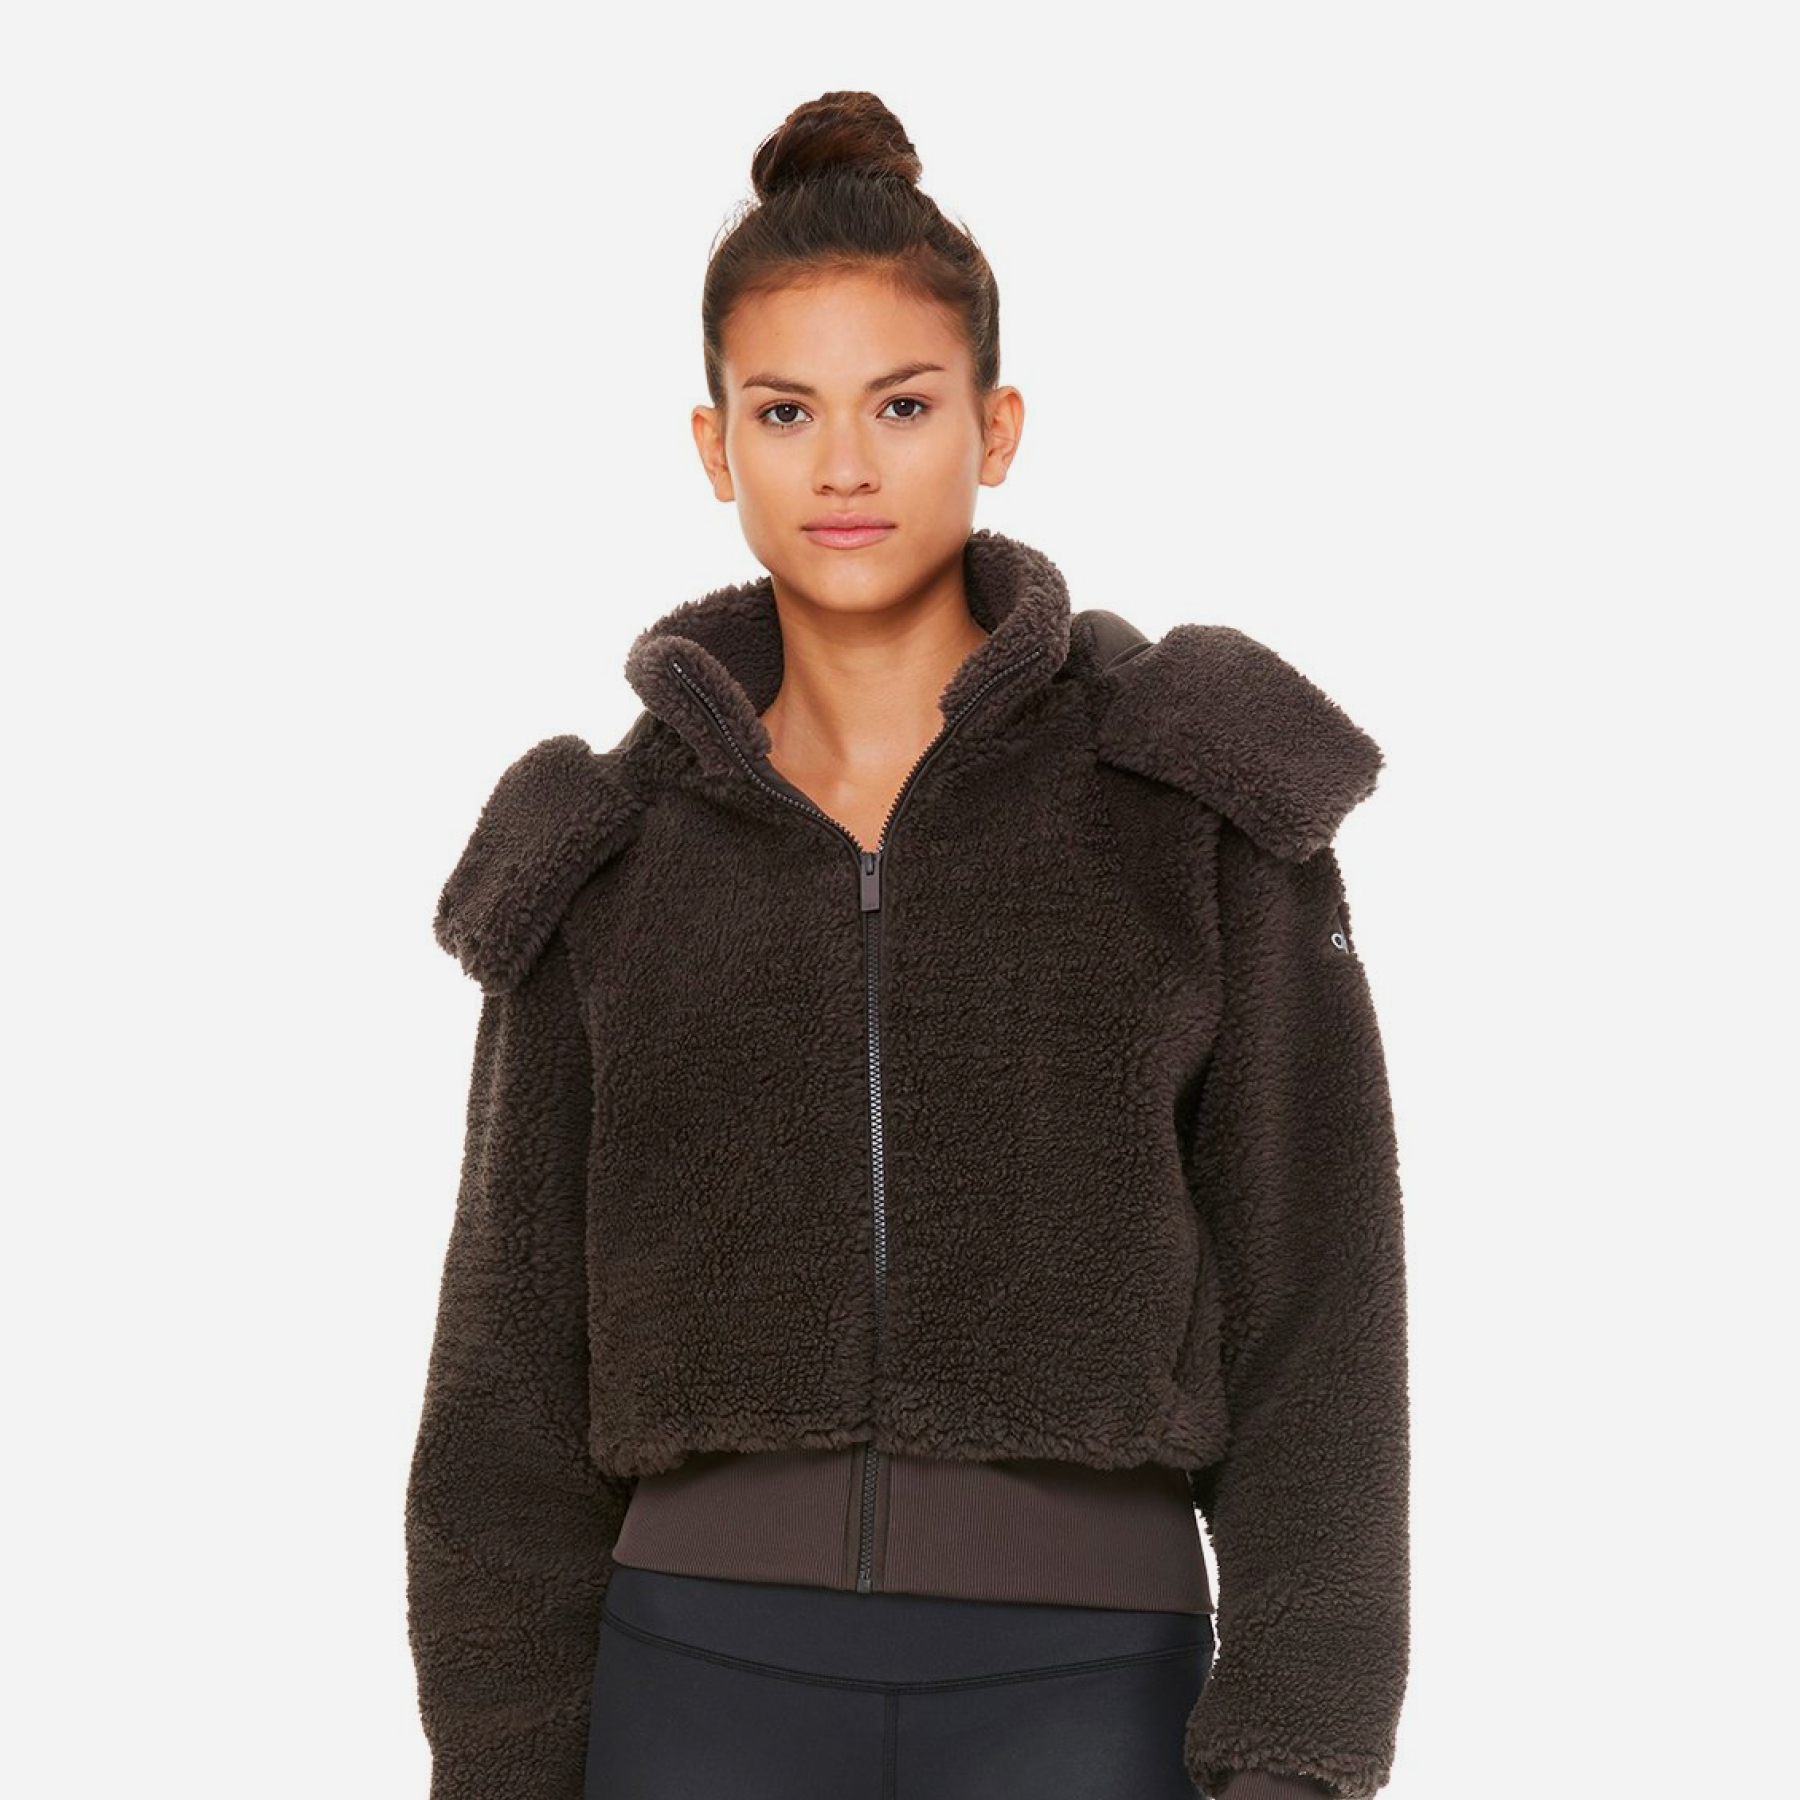 ALL-SORTS-OF-ALO-YOGA-FOXY-SHERPA-JACKET